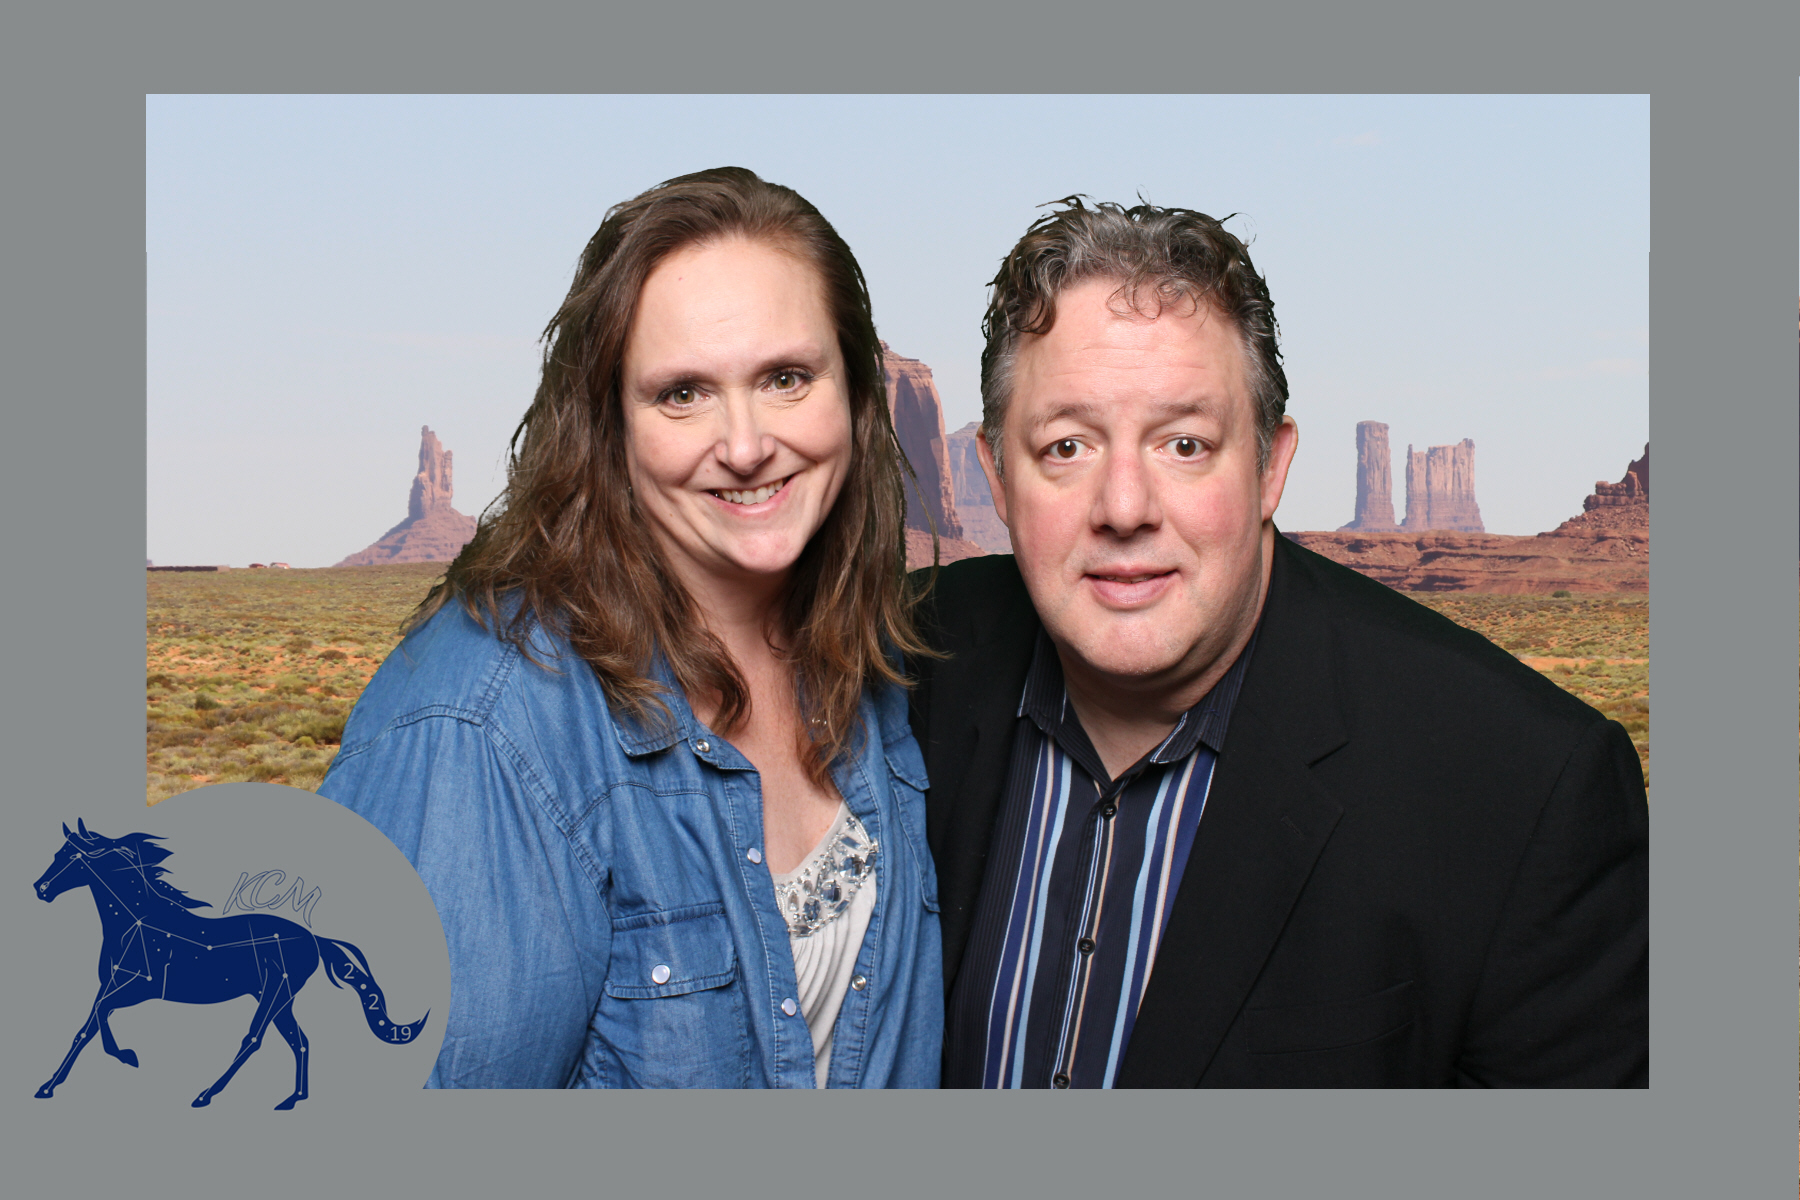 Green Screen Photo Booth Rental NYC 5.jpg